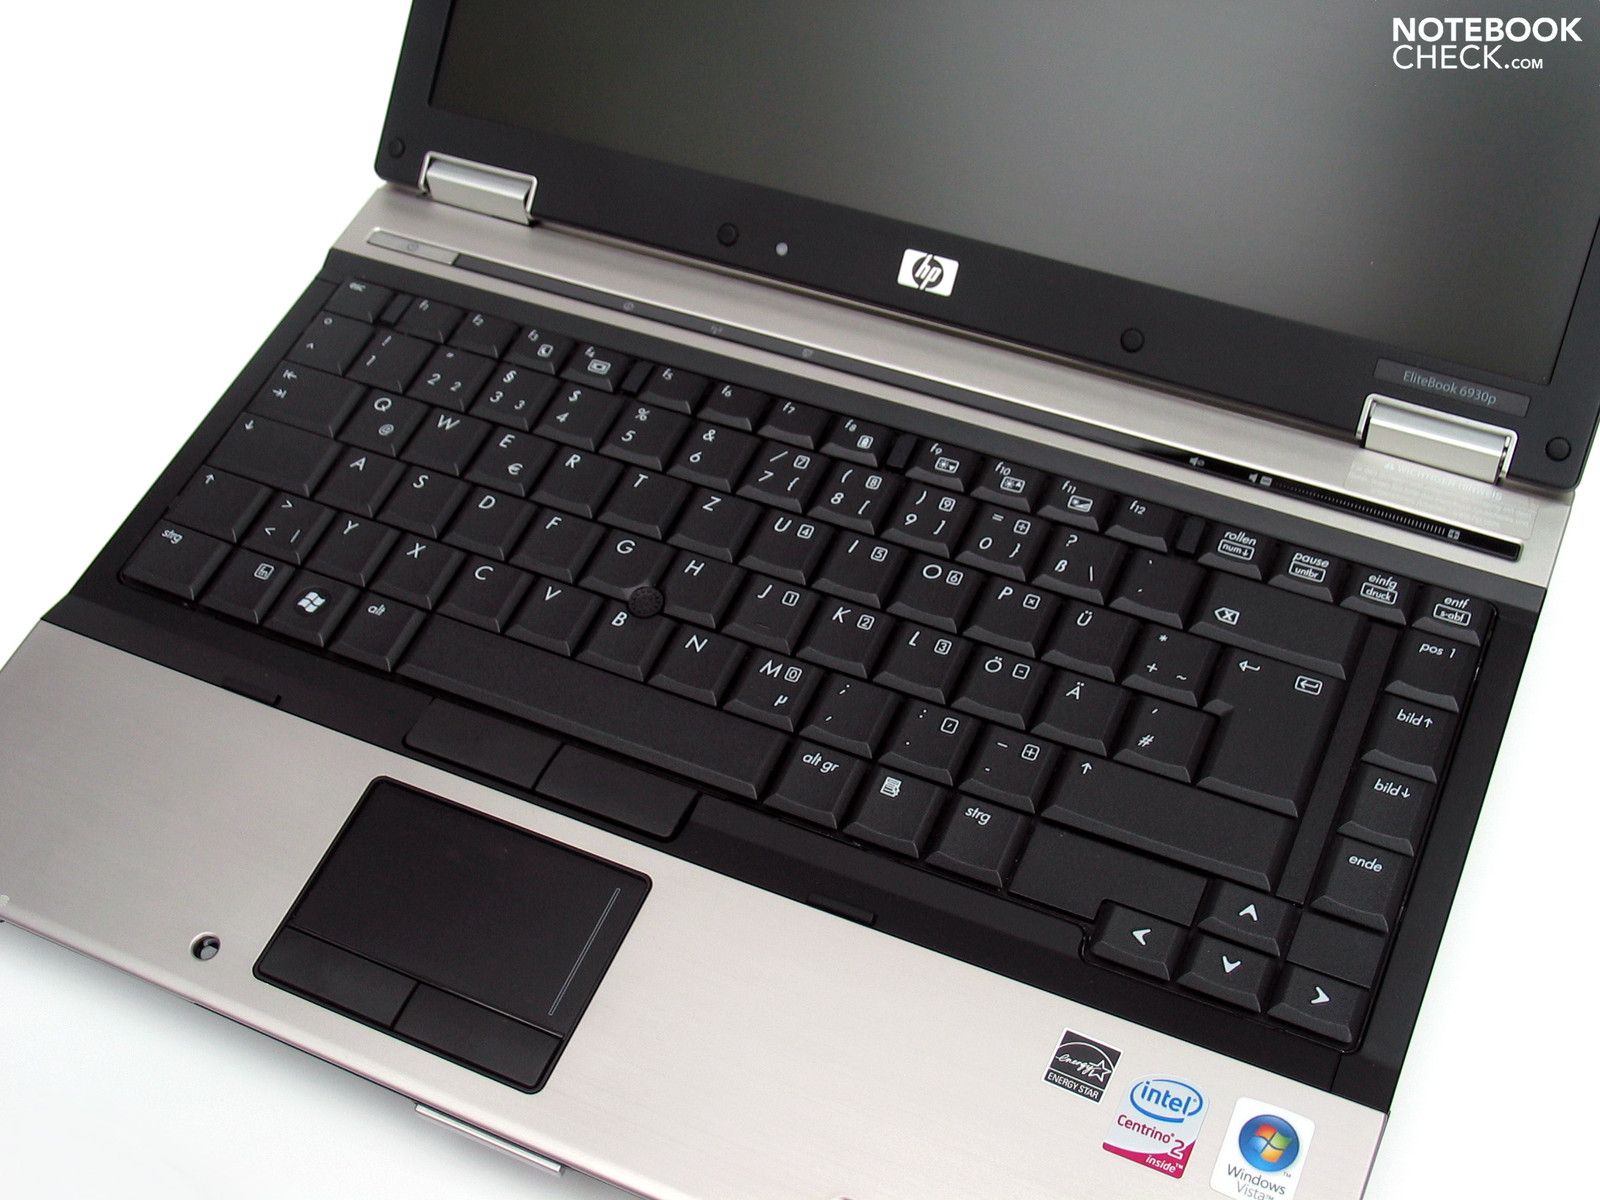 HP EliteBook 8530w Mobile Workstation ATI VGA Driver Windows XP